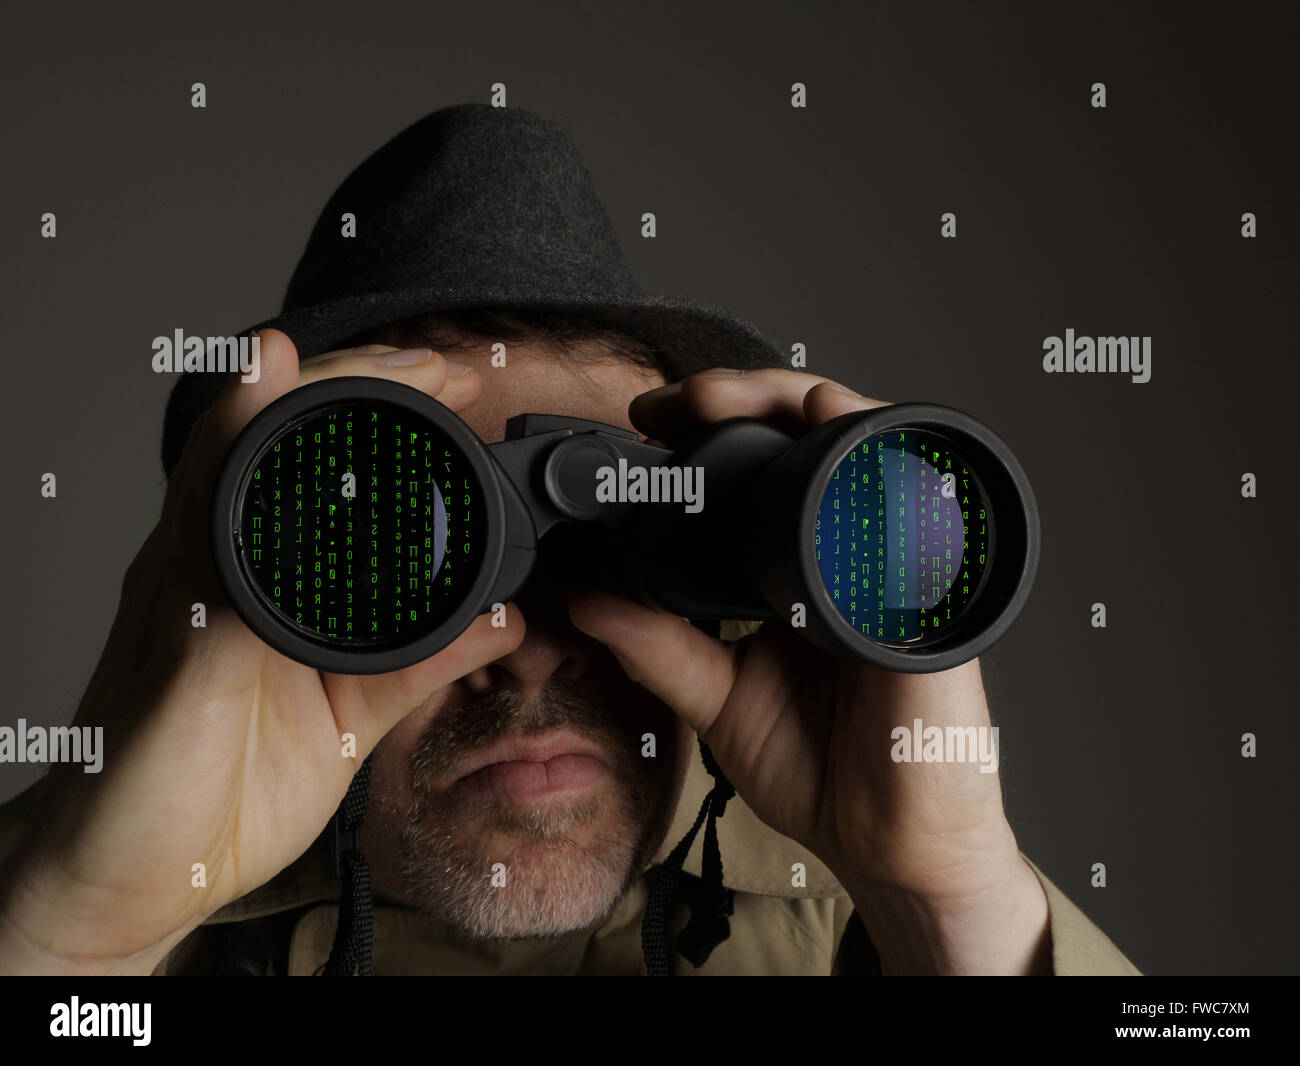 Photograph of a man in trench coat and hat looking through binoculars at computer code. - Stock Image